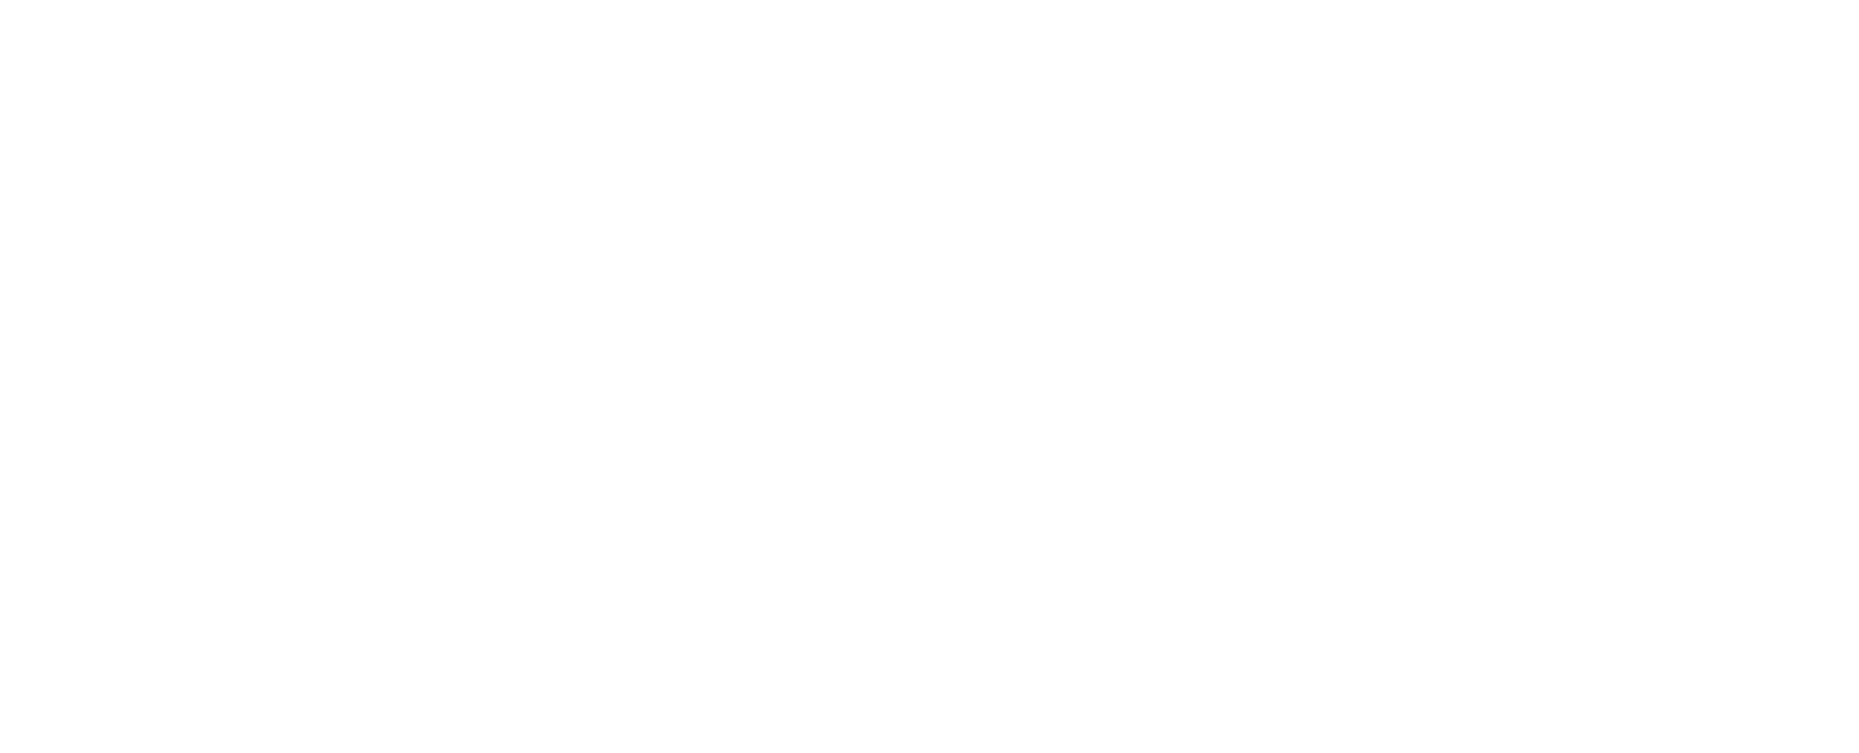 World Leasing Yearbook 2019 Contributors | World Leasing Yearbook